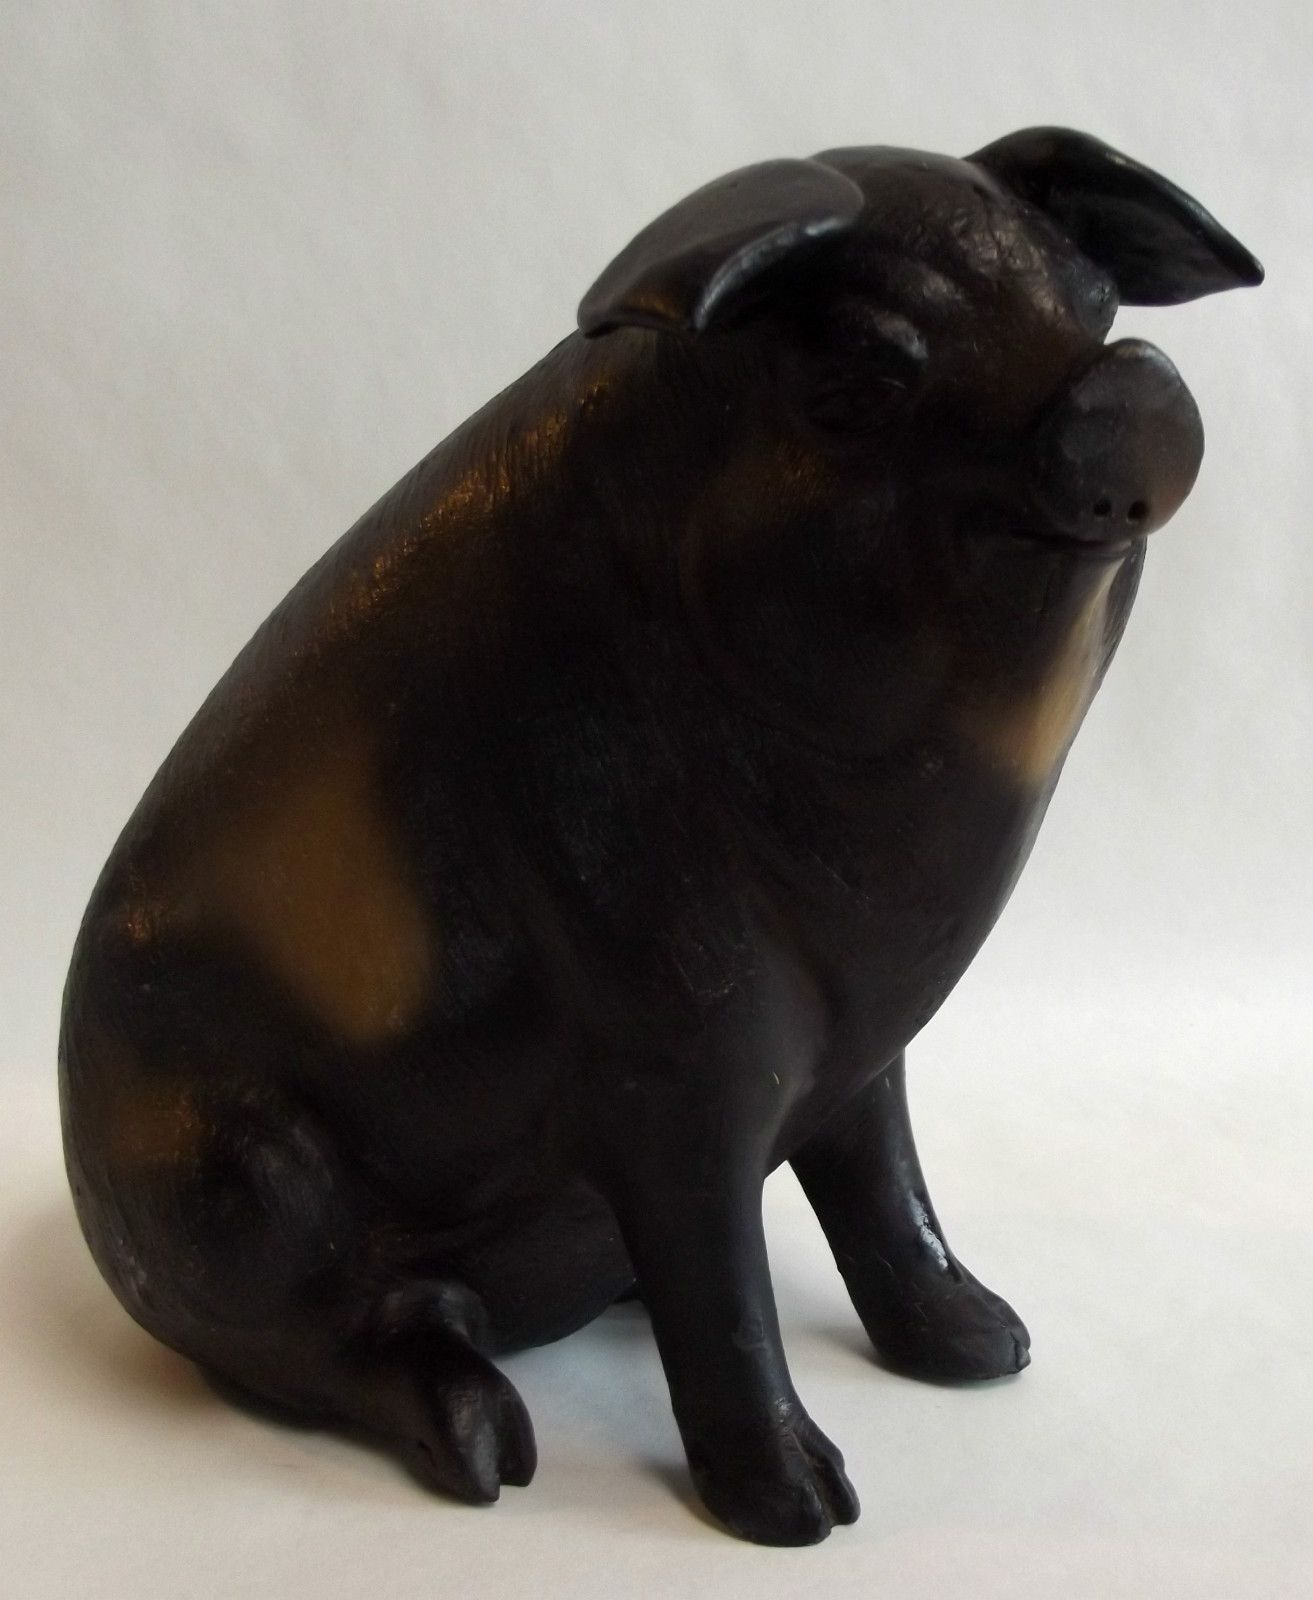 Animal Coin Banks Vintage Pottery Pig Ceramic Piggy Coin Bank With Coins